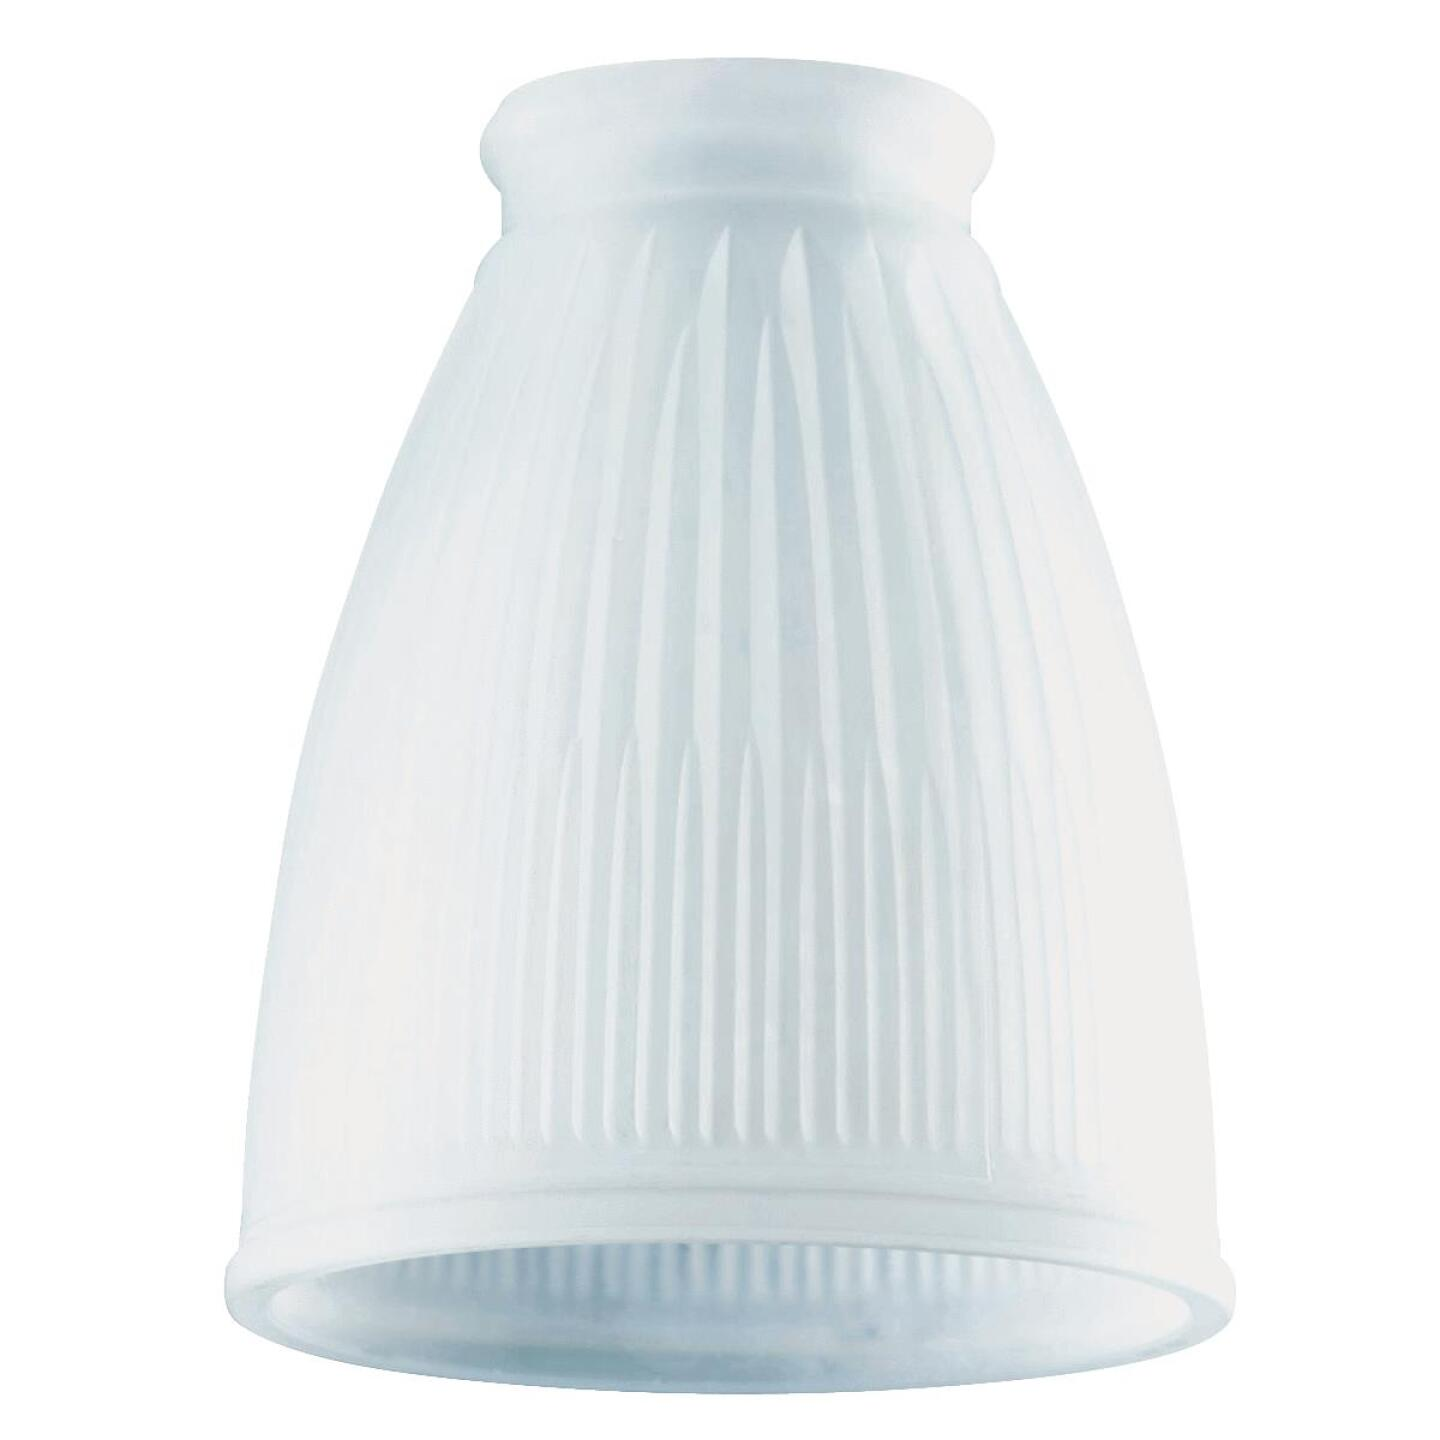 Westinghouse 5 In. Frosted Pleated Glass Shade Image 1